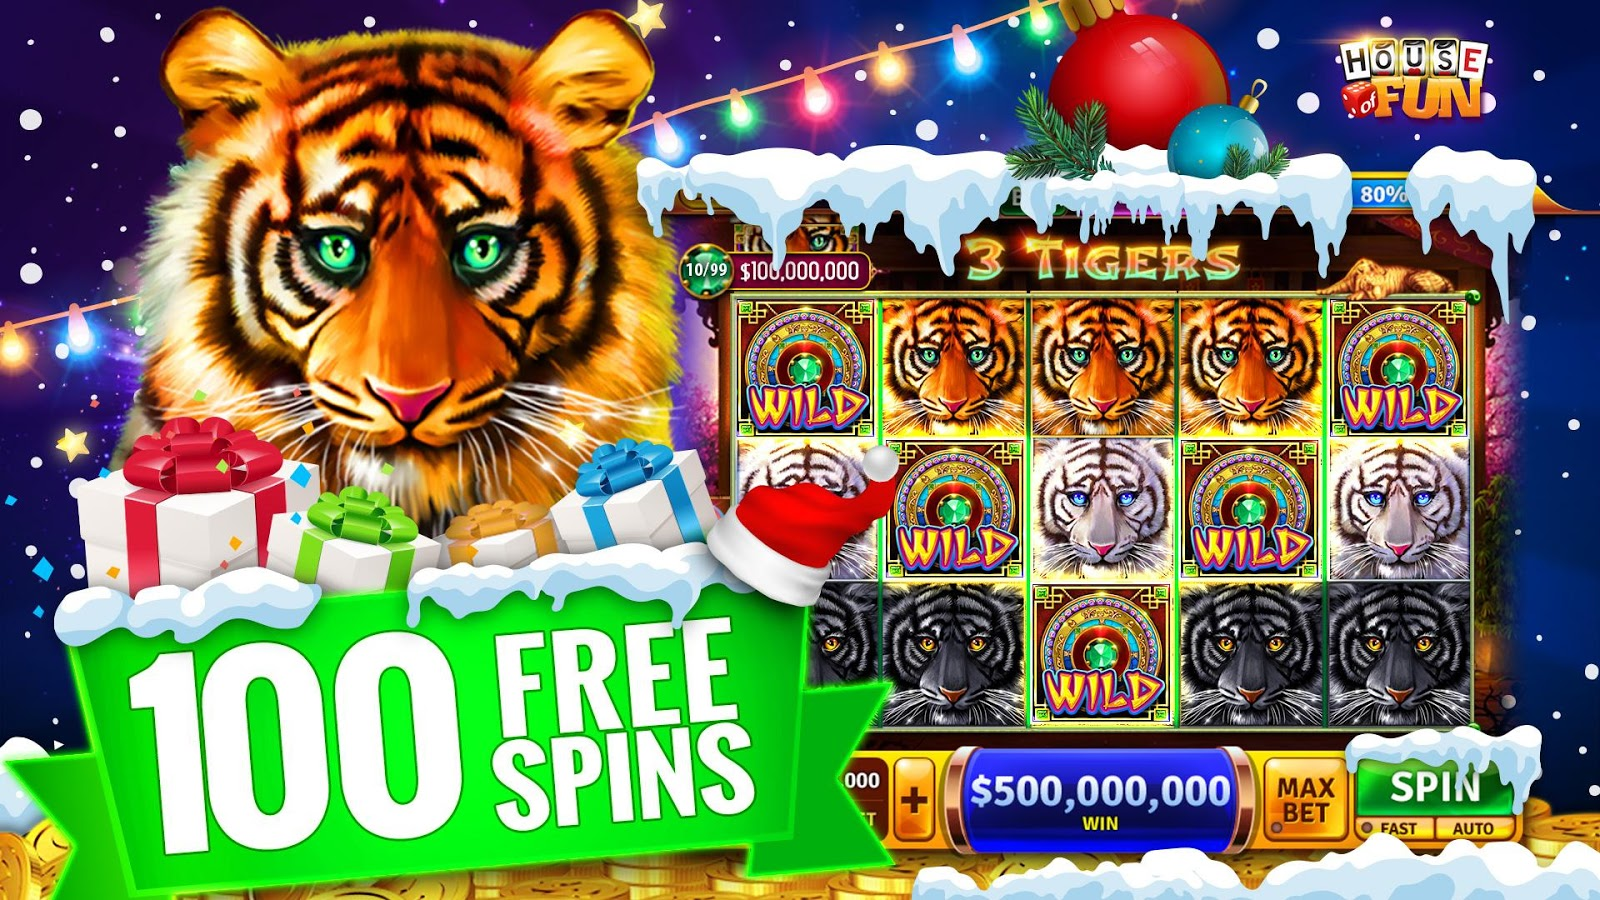 Travel Slots | Play FREE Travel-themed Slot Machine Games